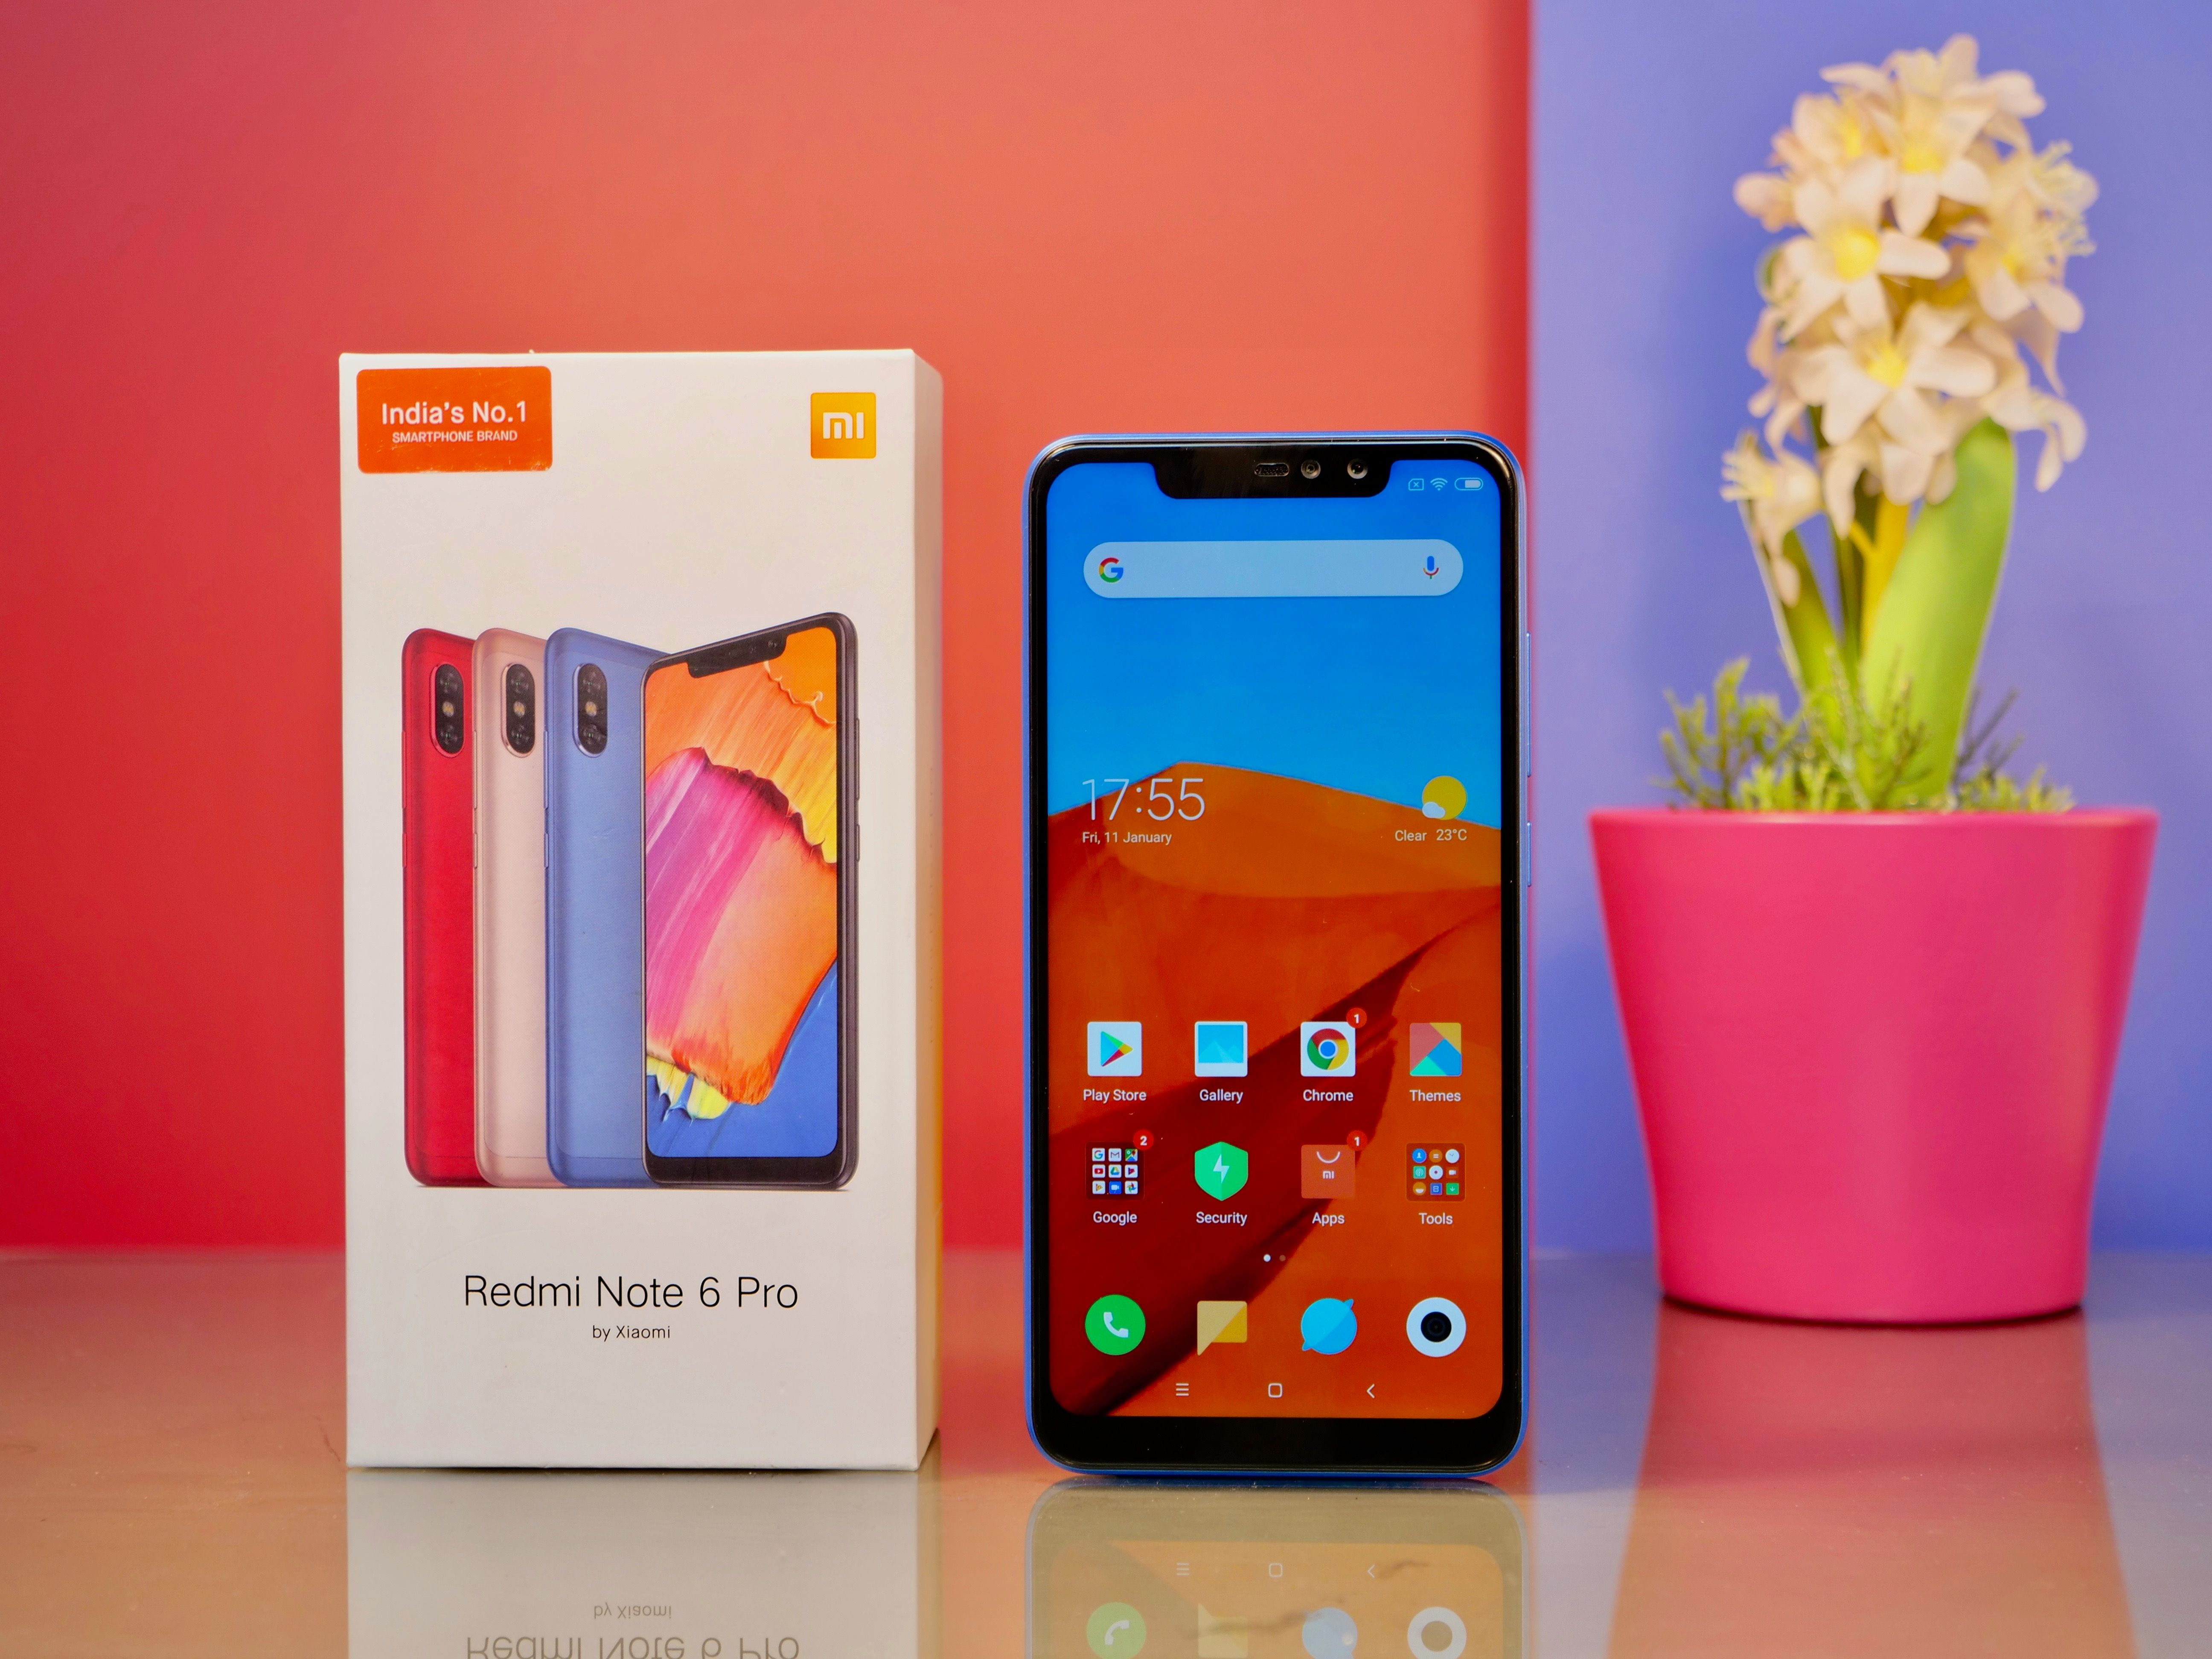 eae92f8ea92 Xiaomi Redmi Note 6 Pro Review: Excellent Smartphone With Aging ...